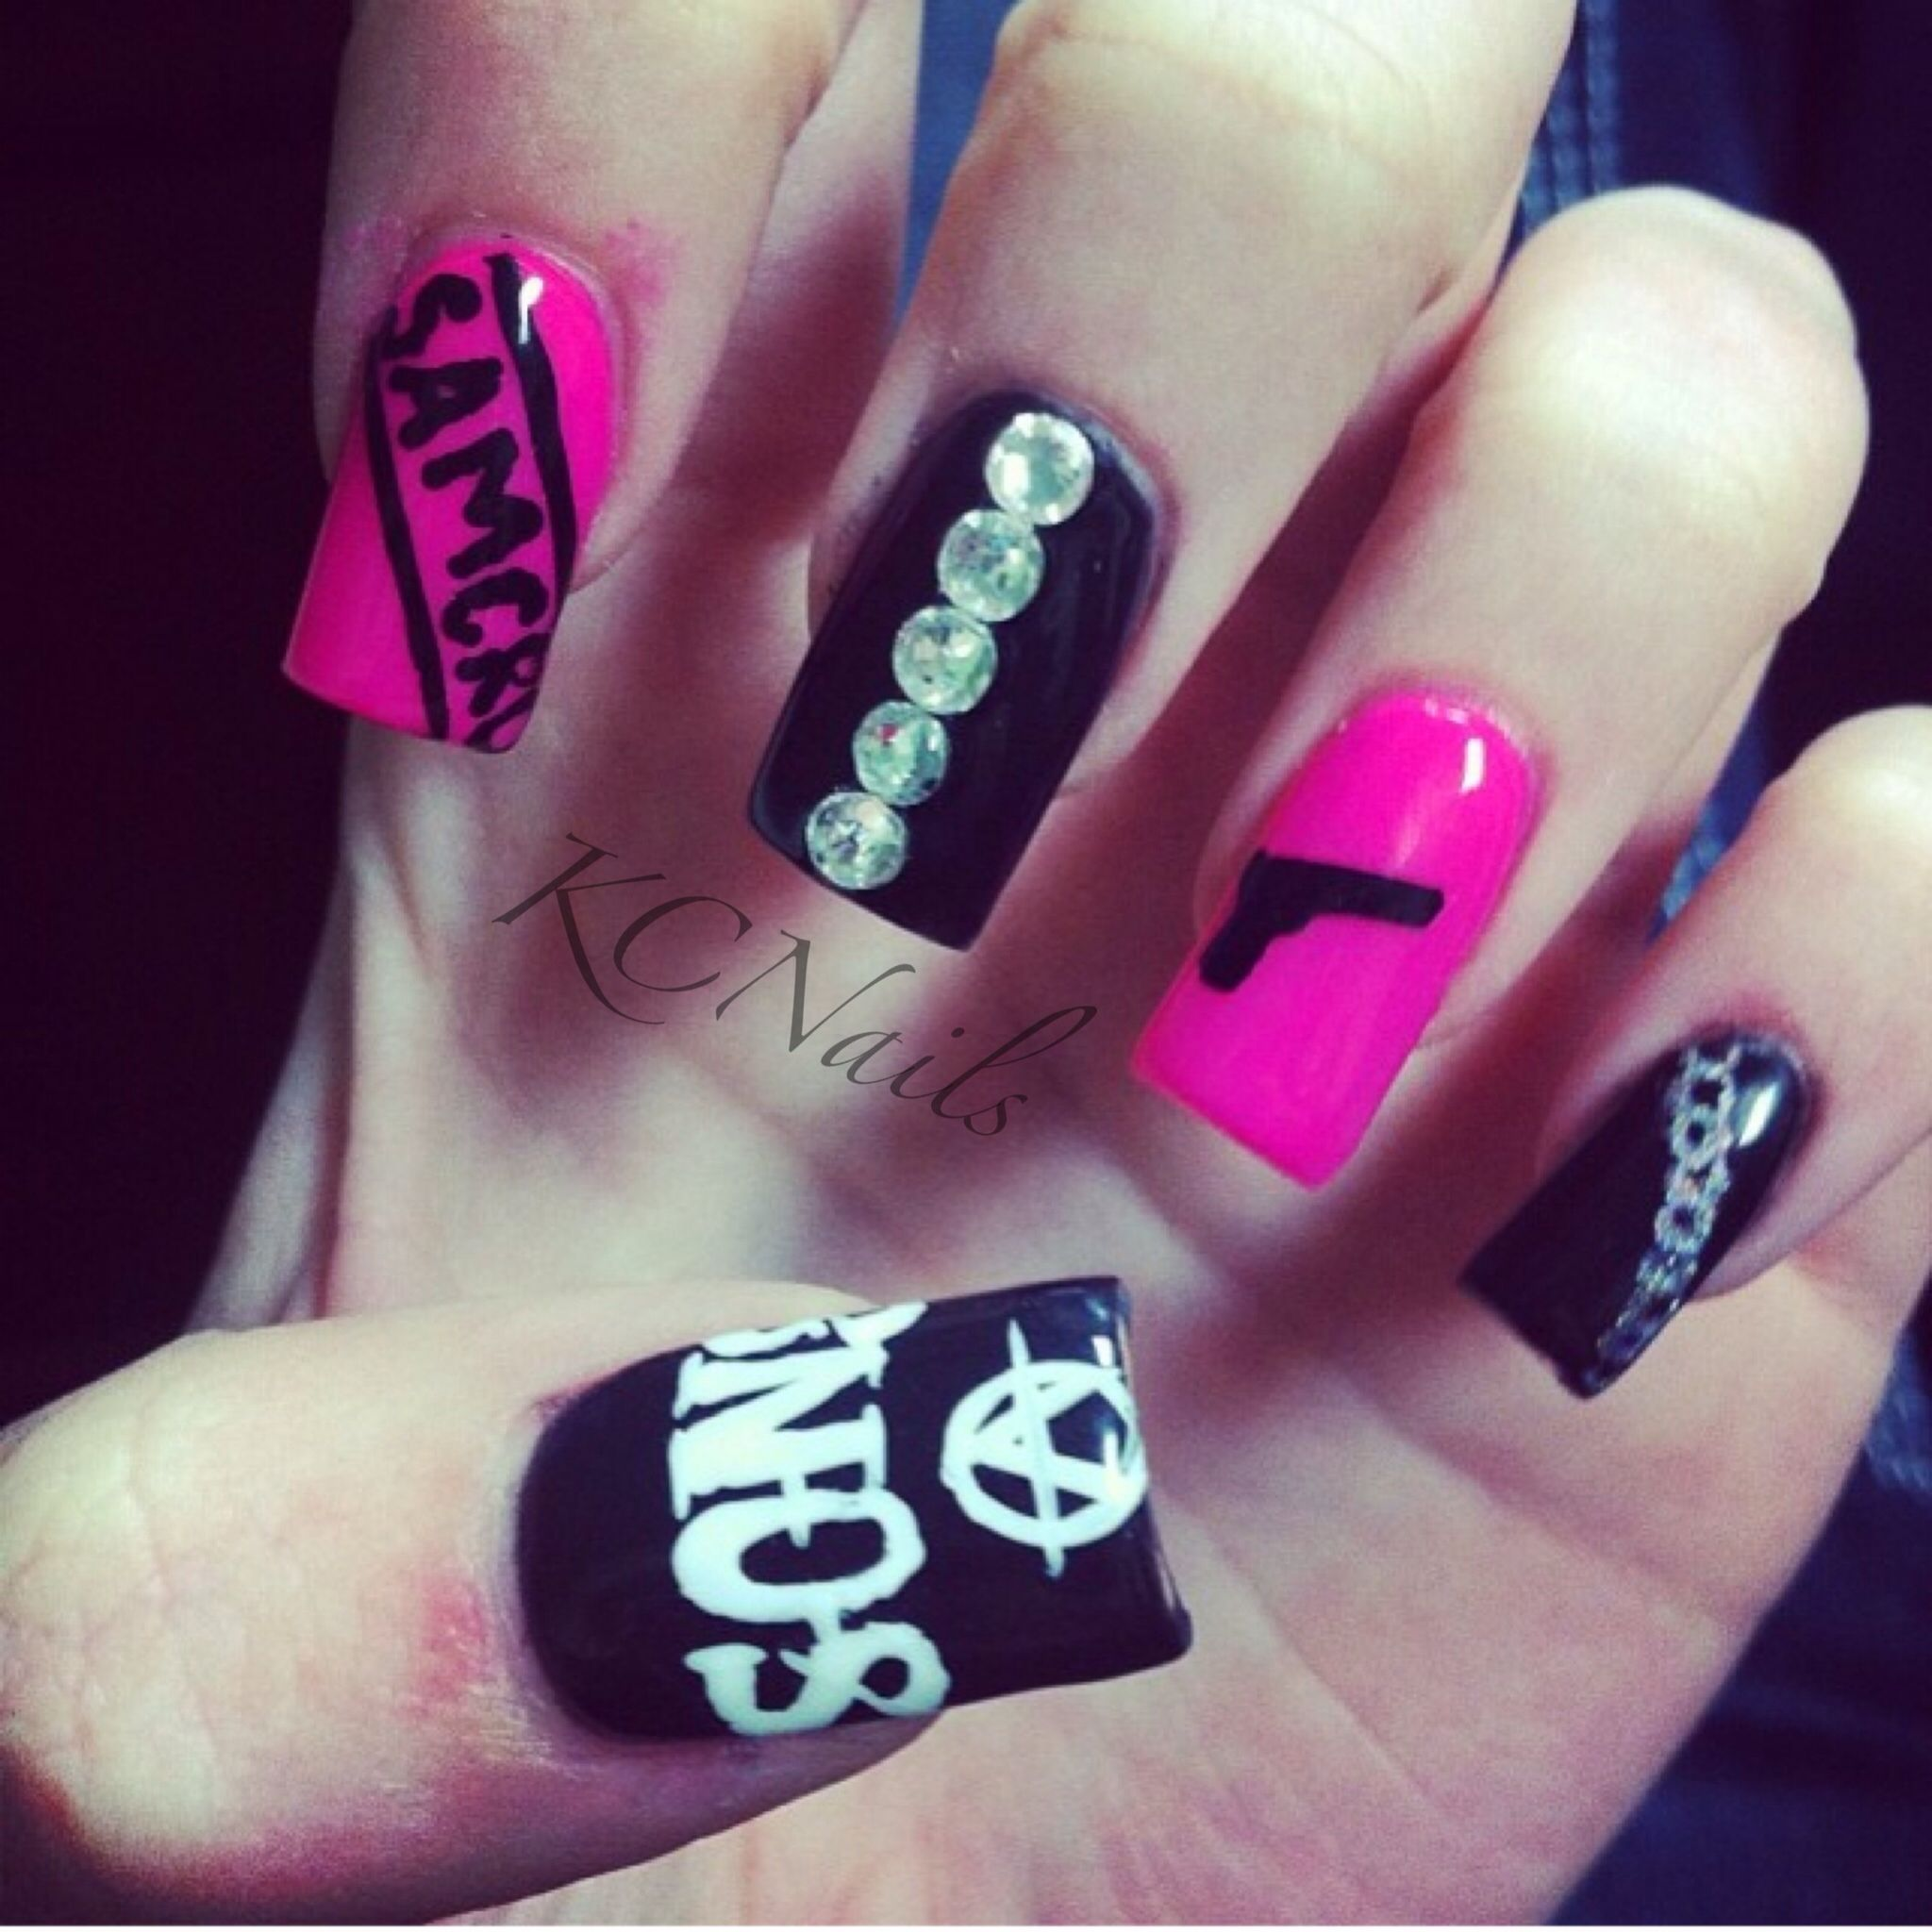 Sons of Anarchy Nails. Hot pink and black acrylic nails ...